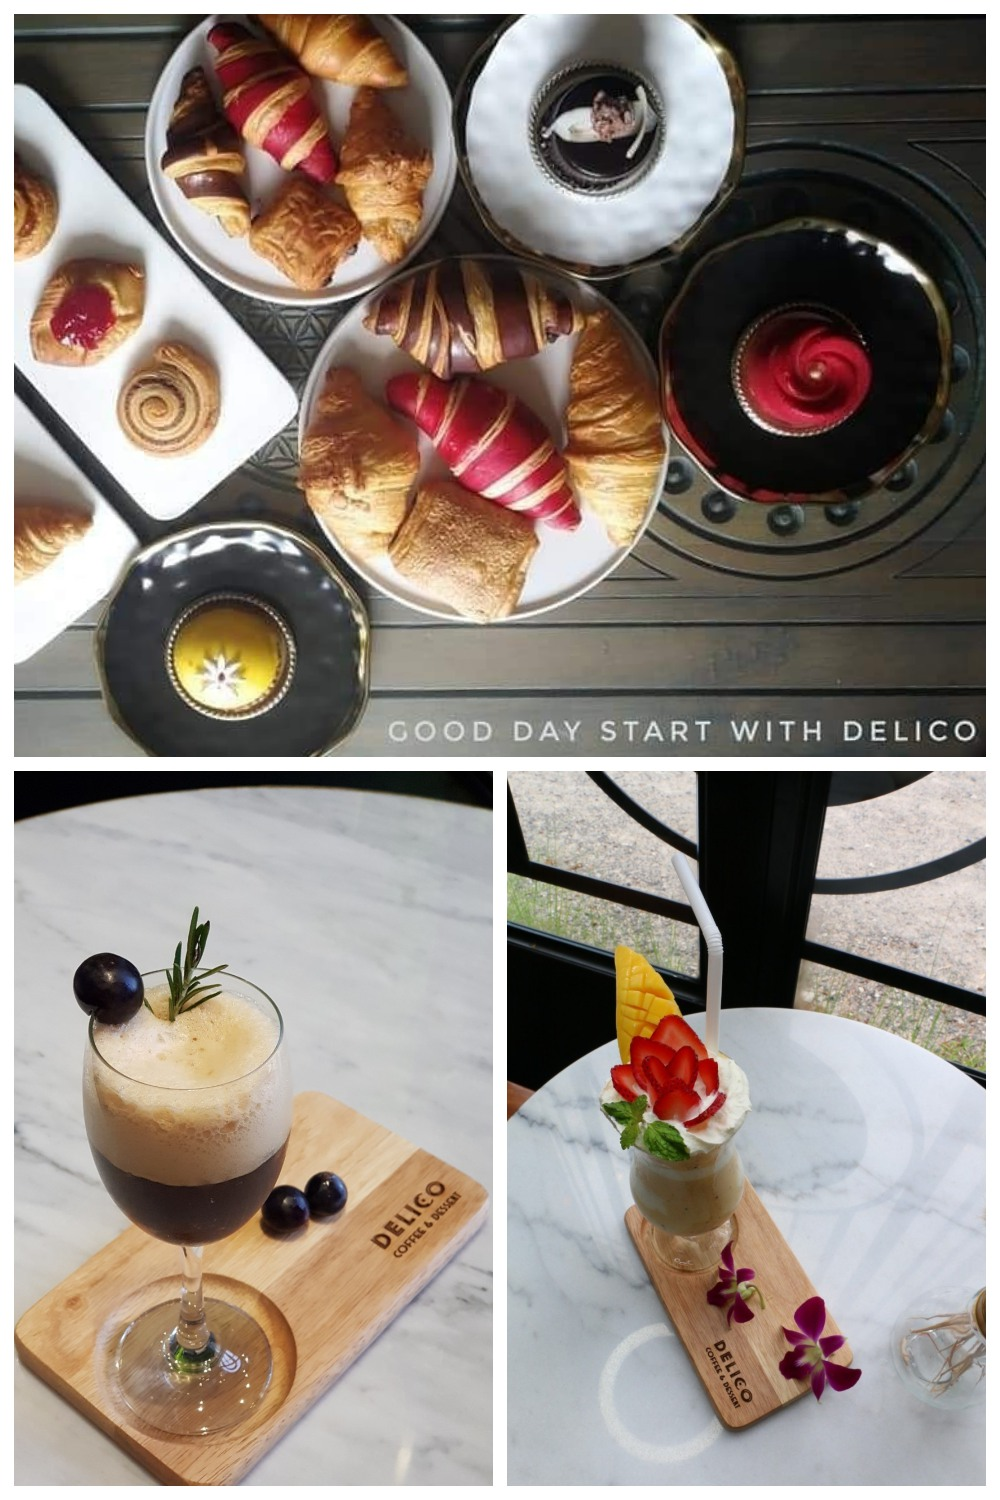 Delico Decoration Coffee And Dessert Phuket นครศรีดีย์